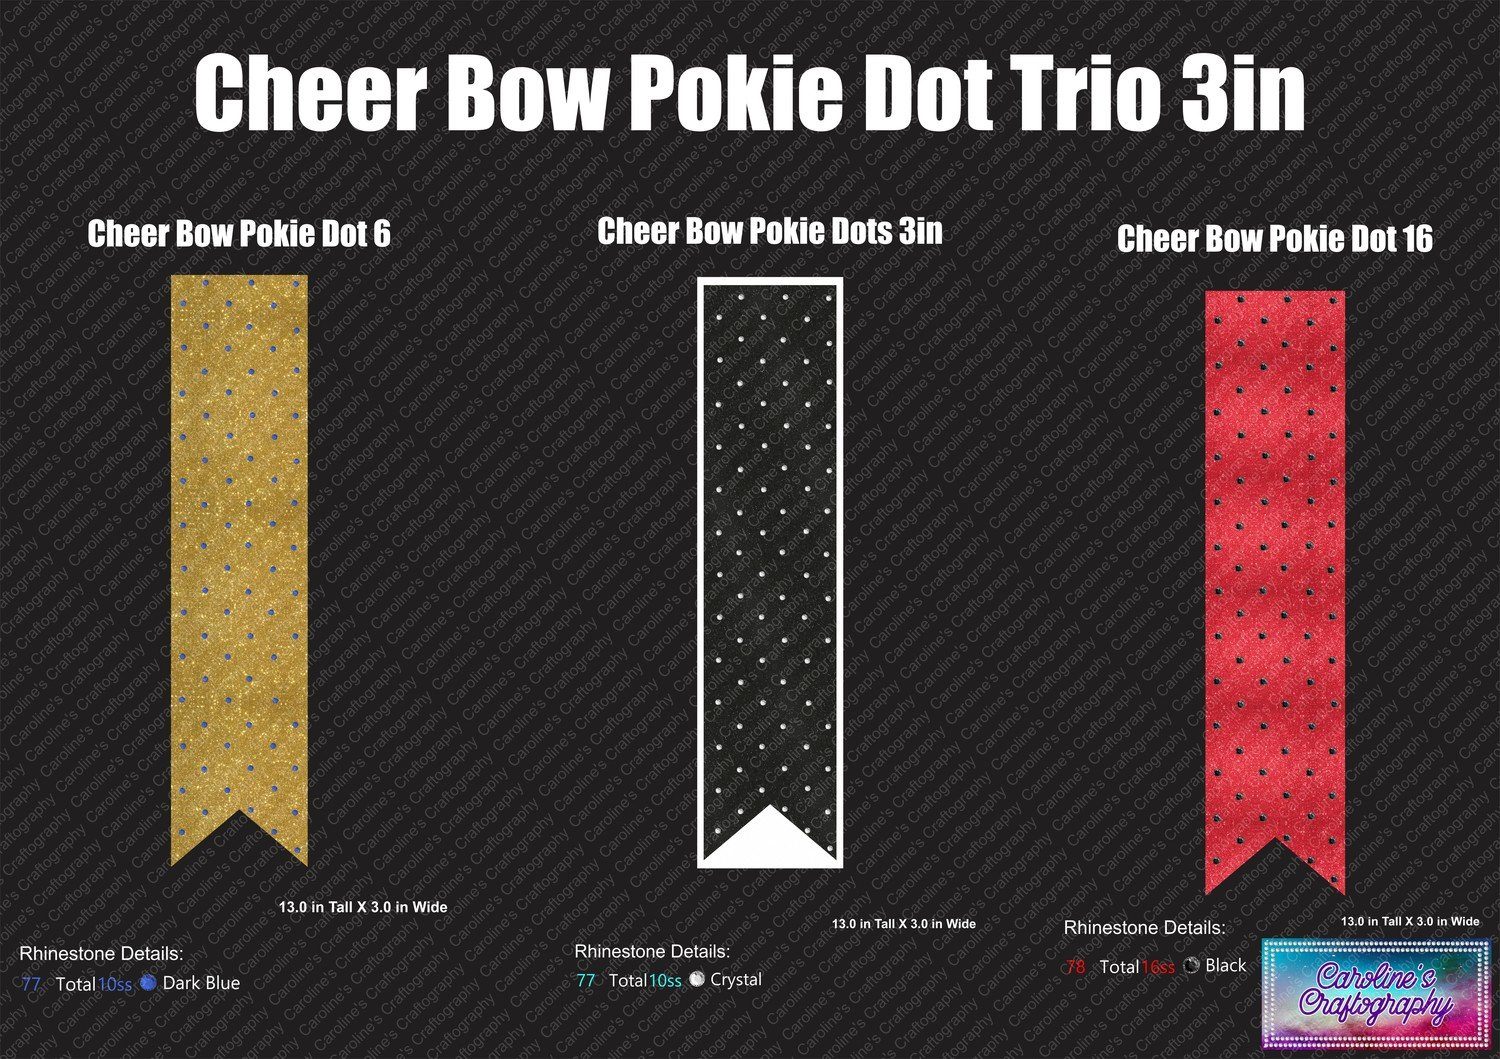 Cheer Bow Pokie Dot 3in Trio